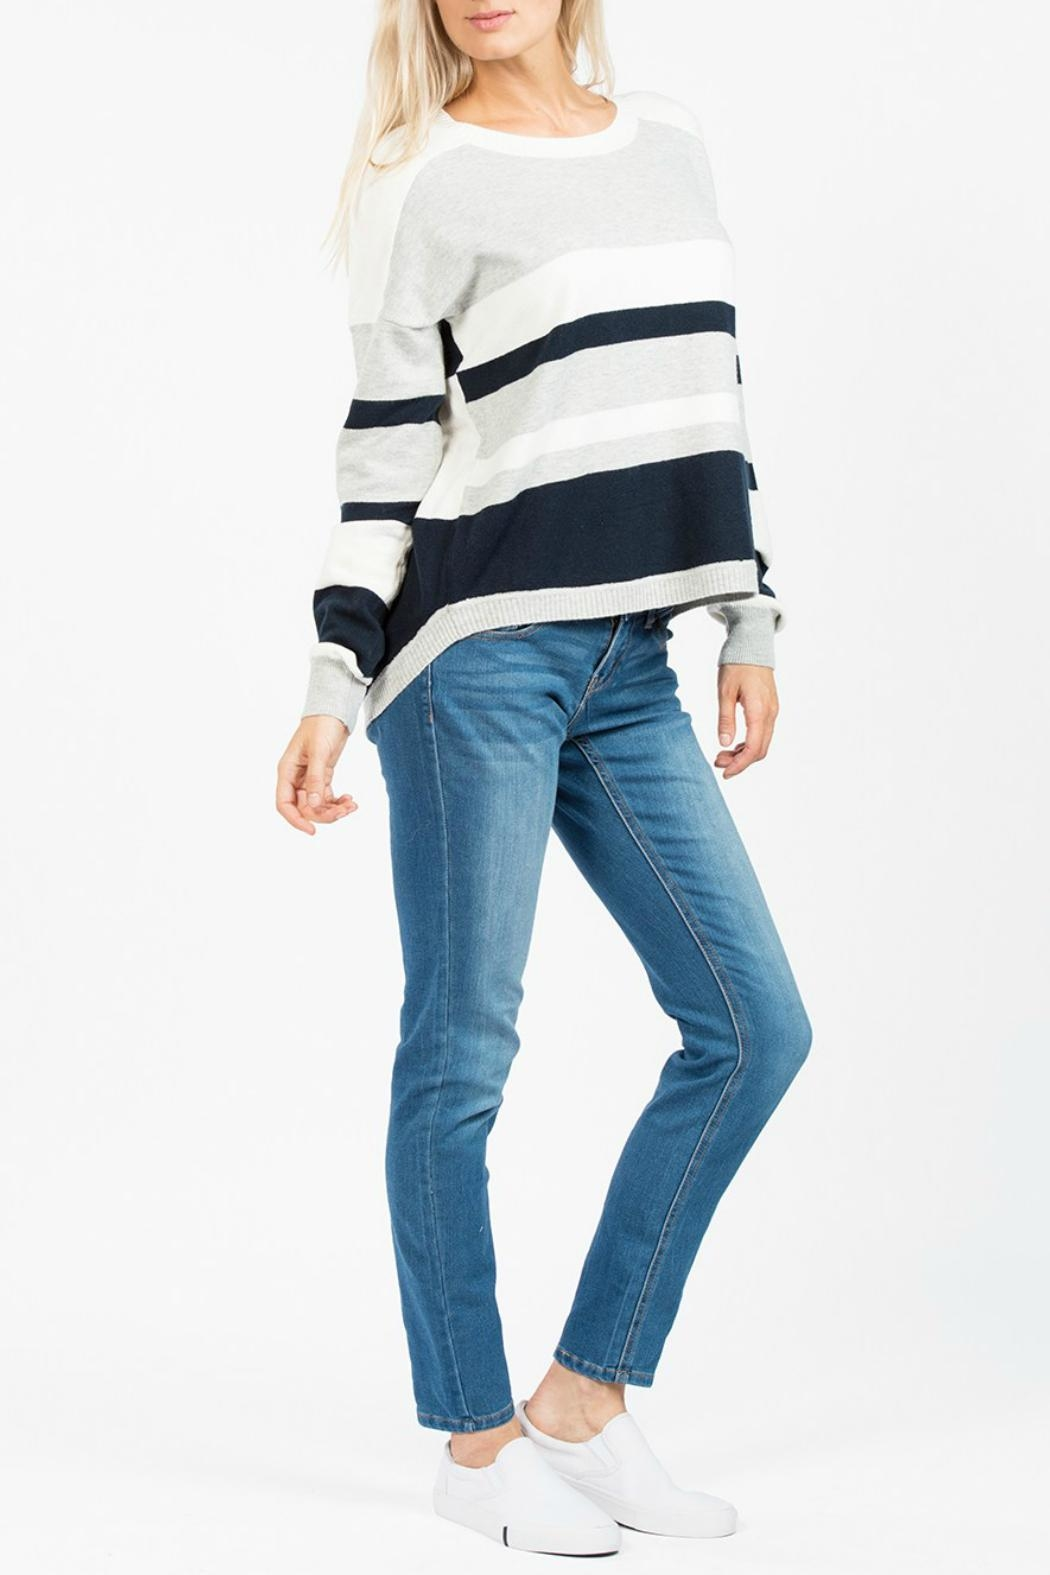 French Connection Varsity Vhari Knit Jumper - Side Cropped Image